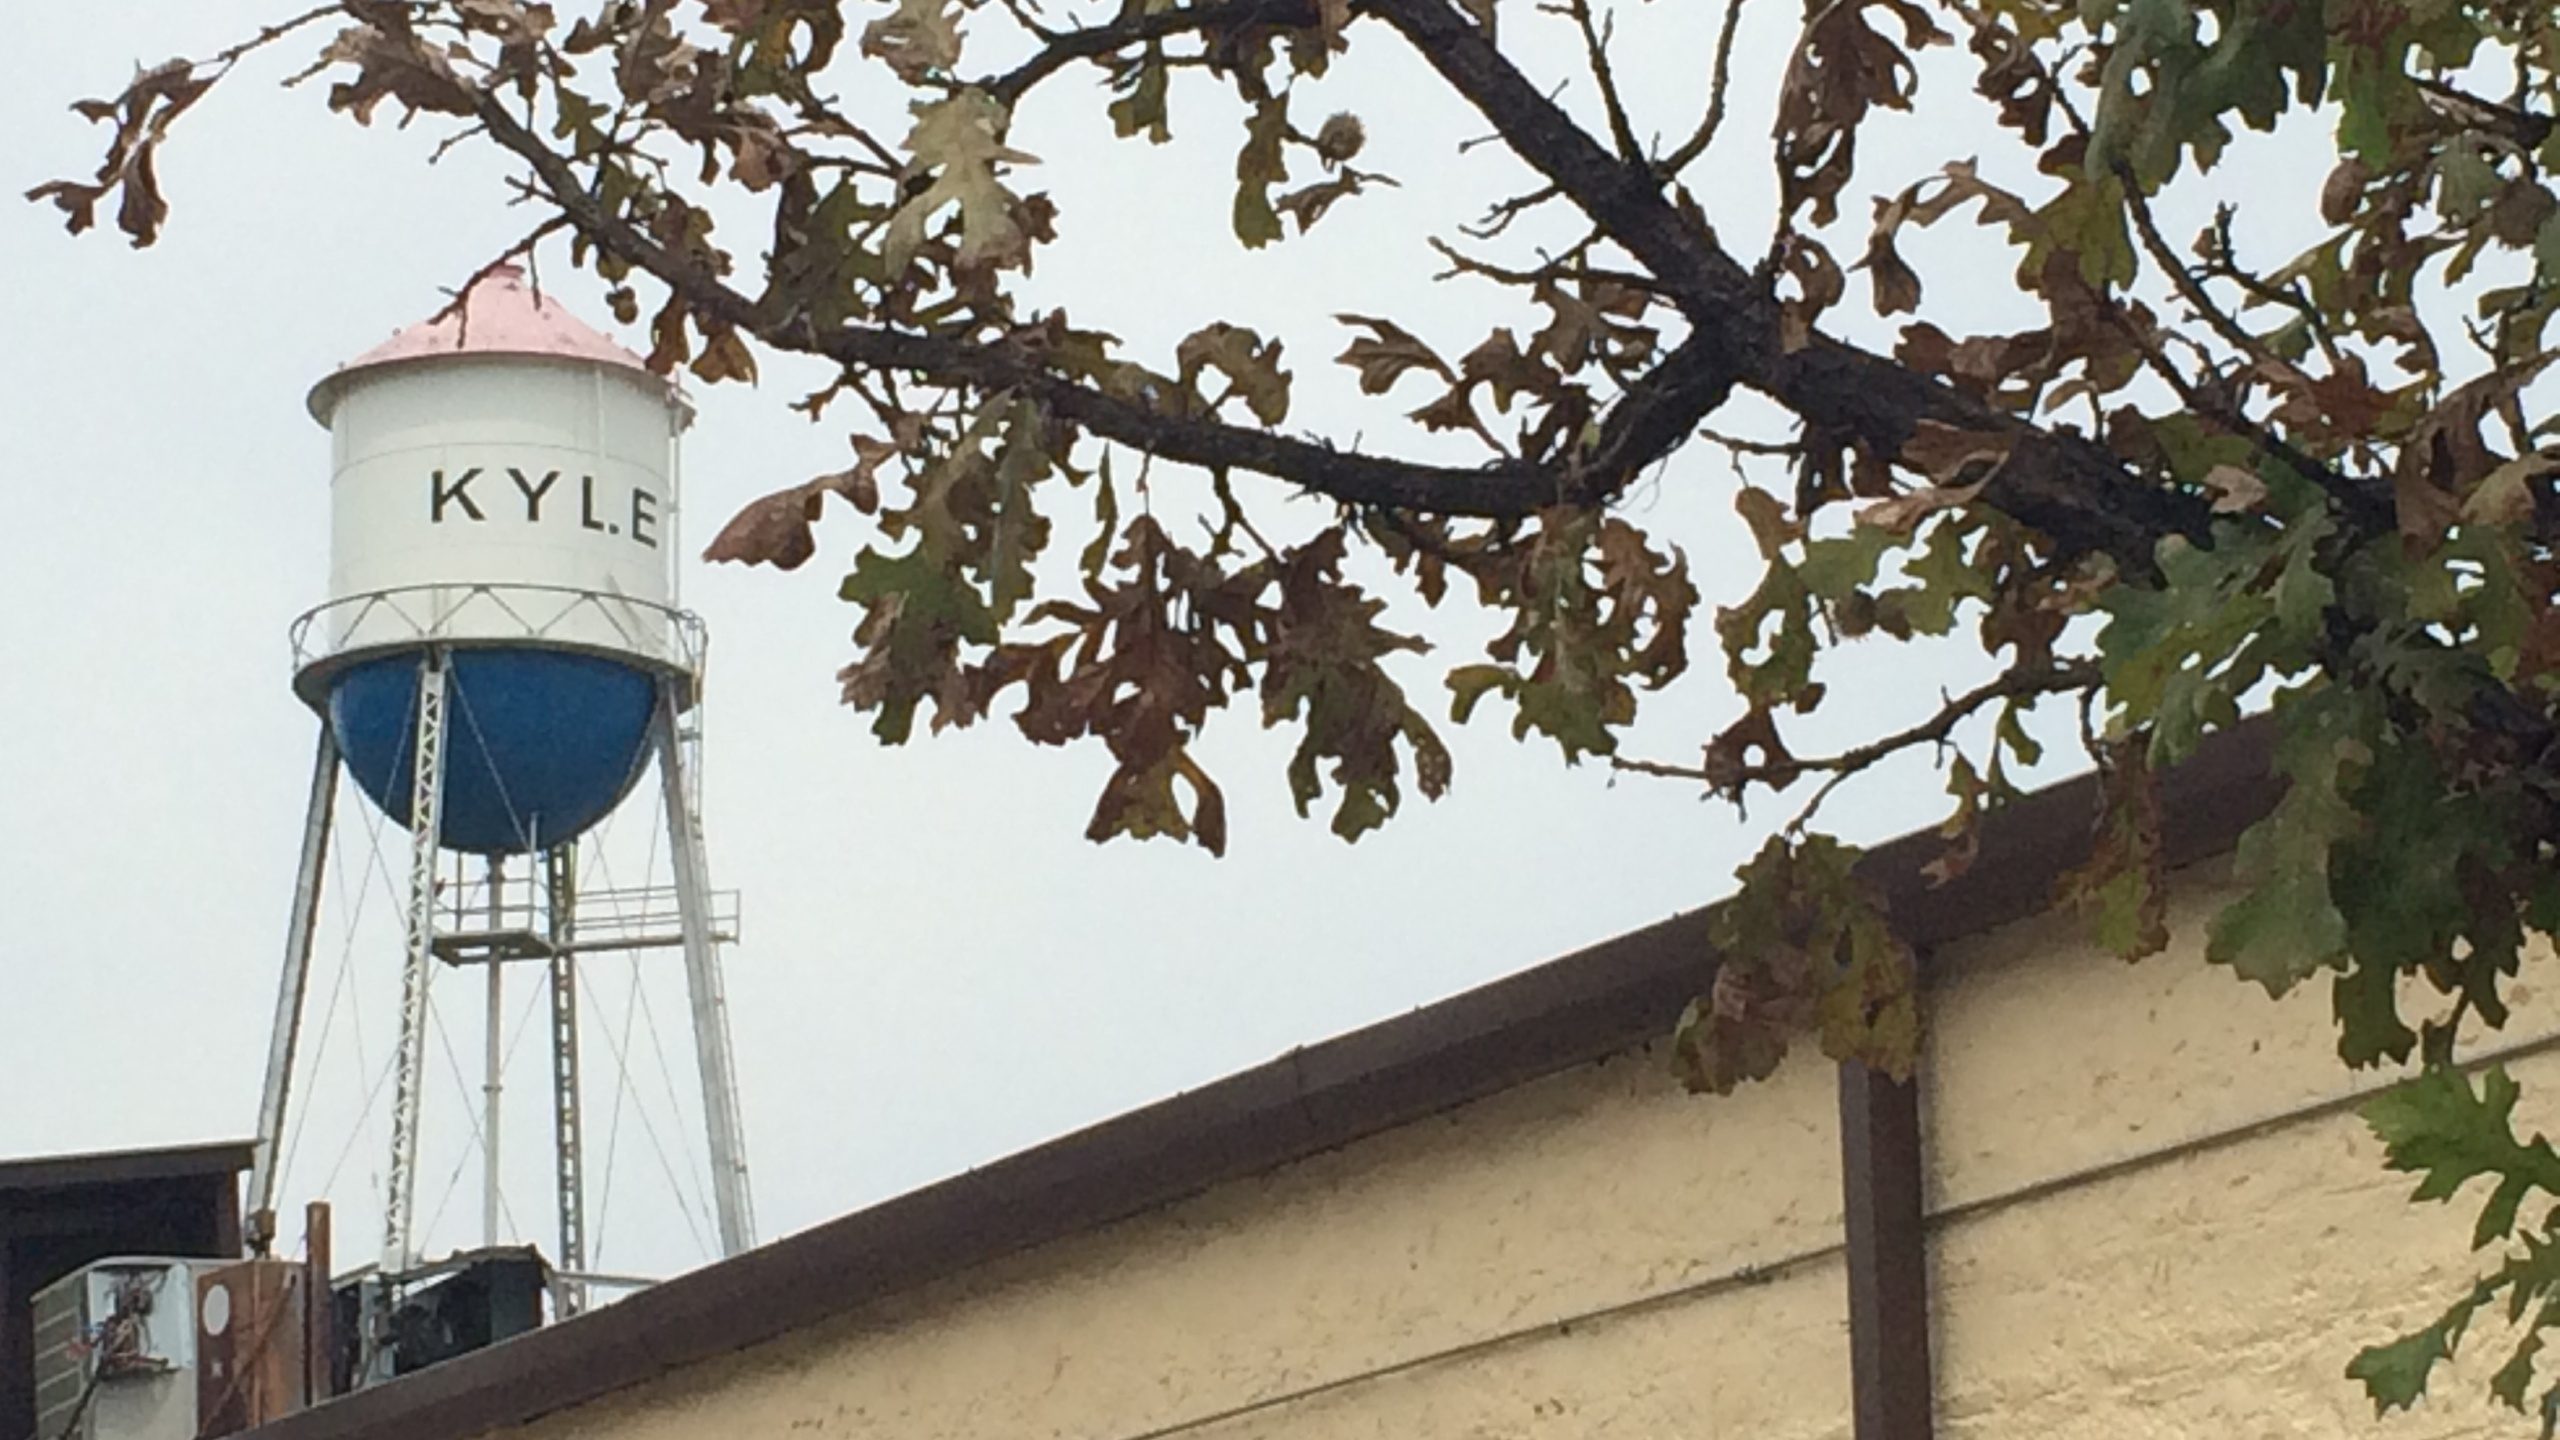 City of Kyle water tower_165314